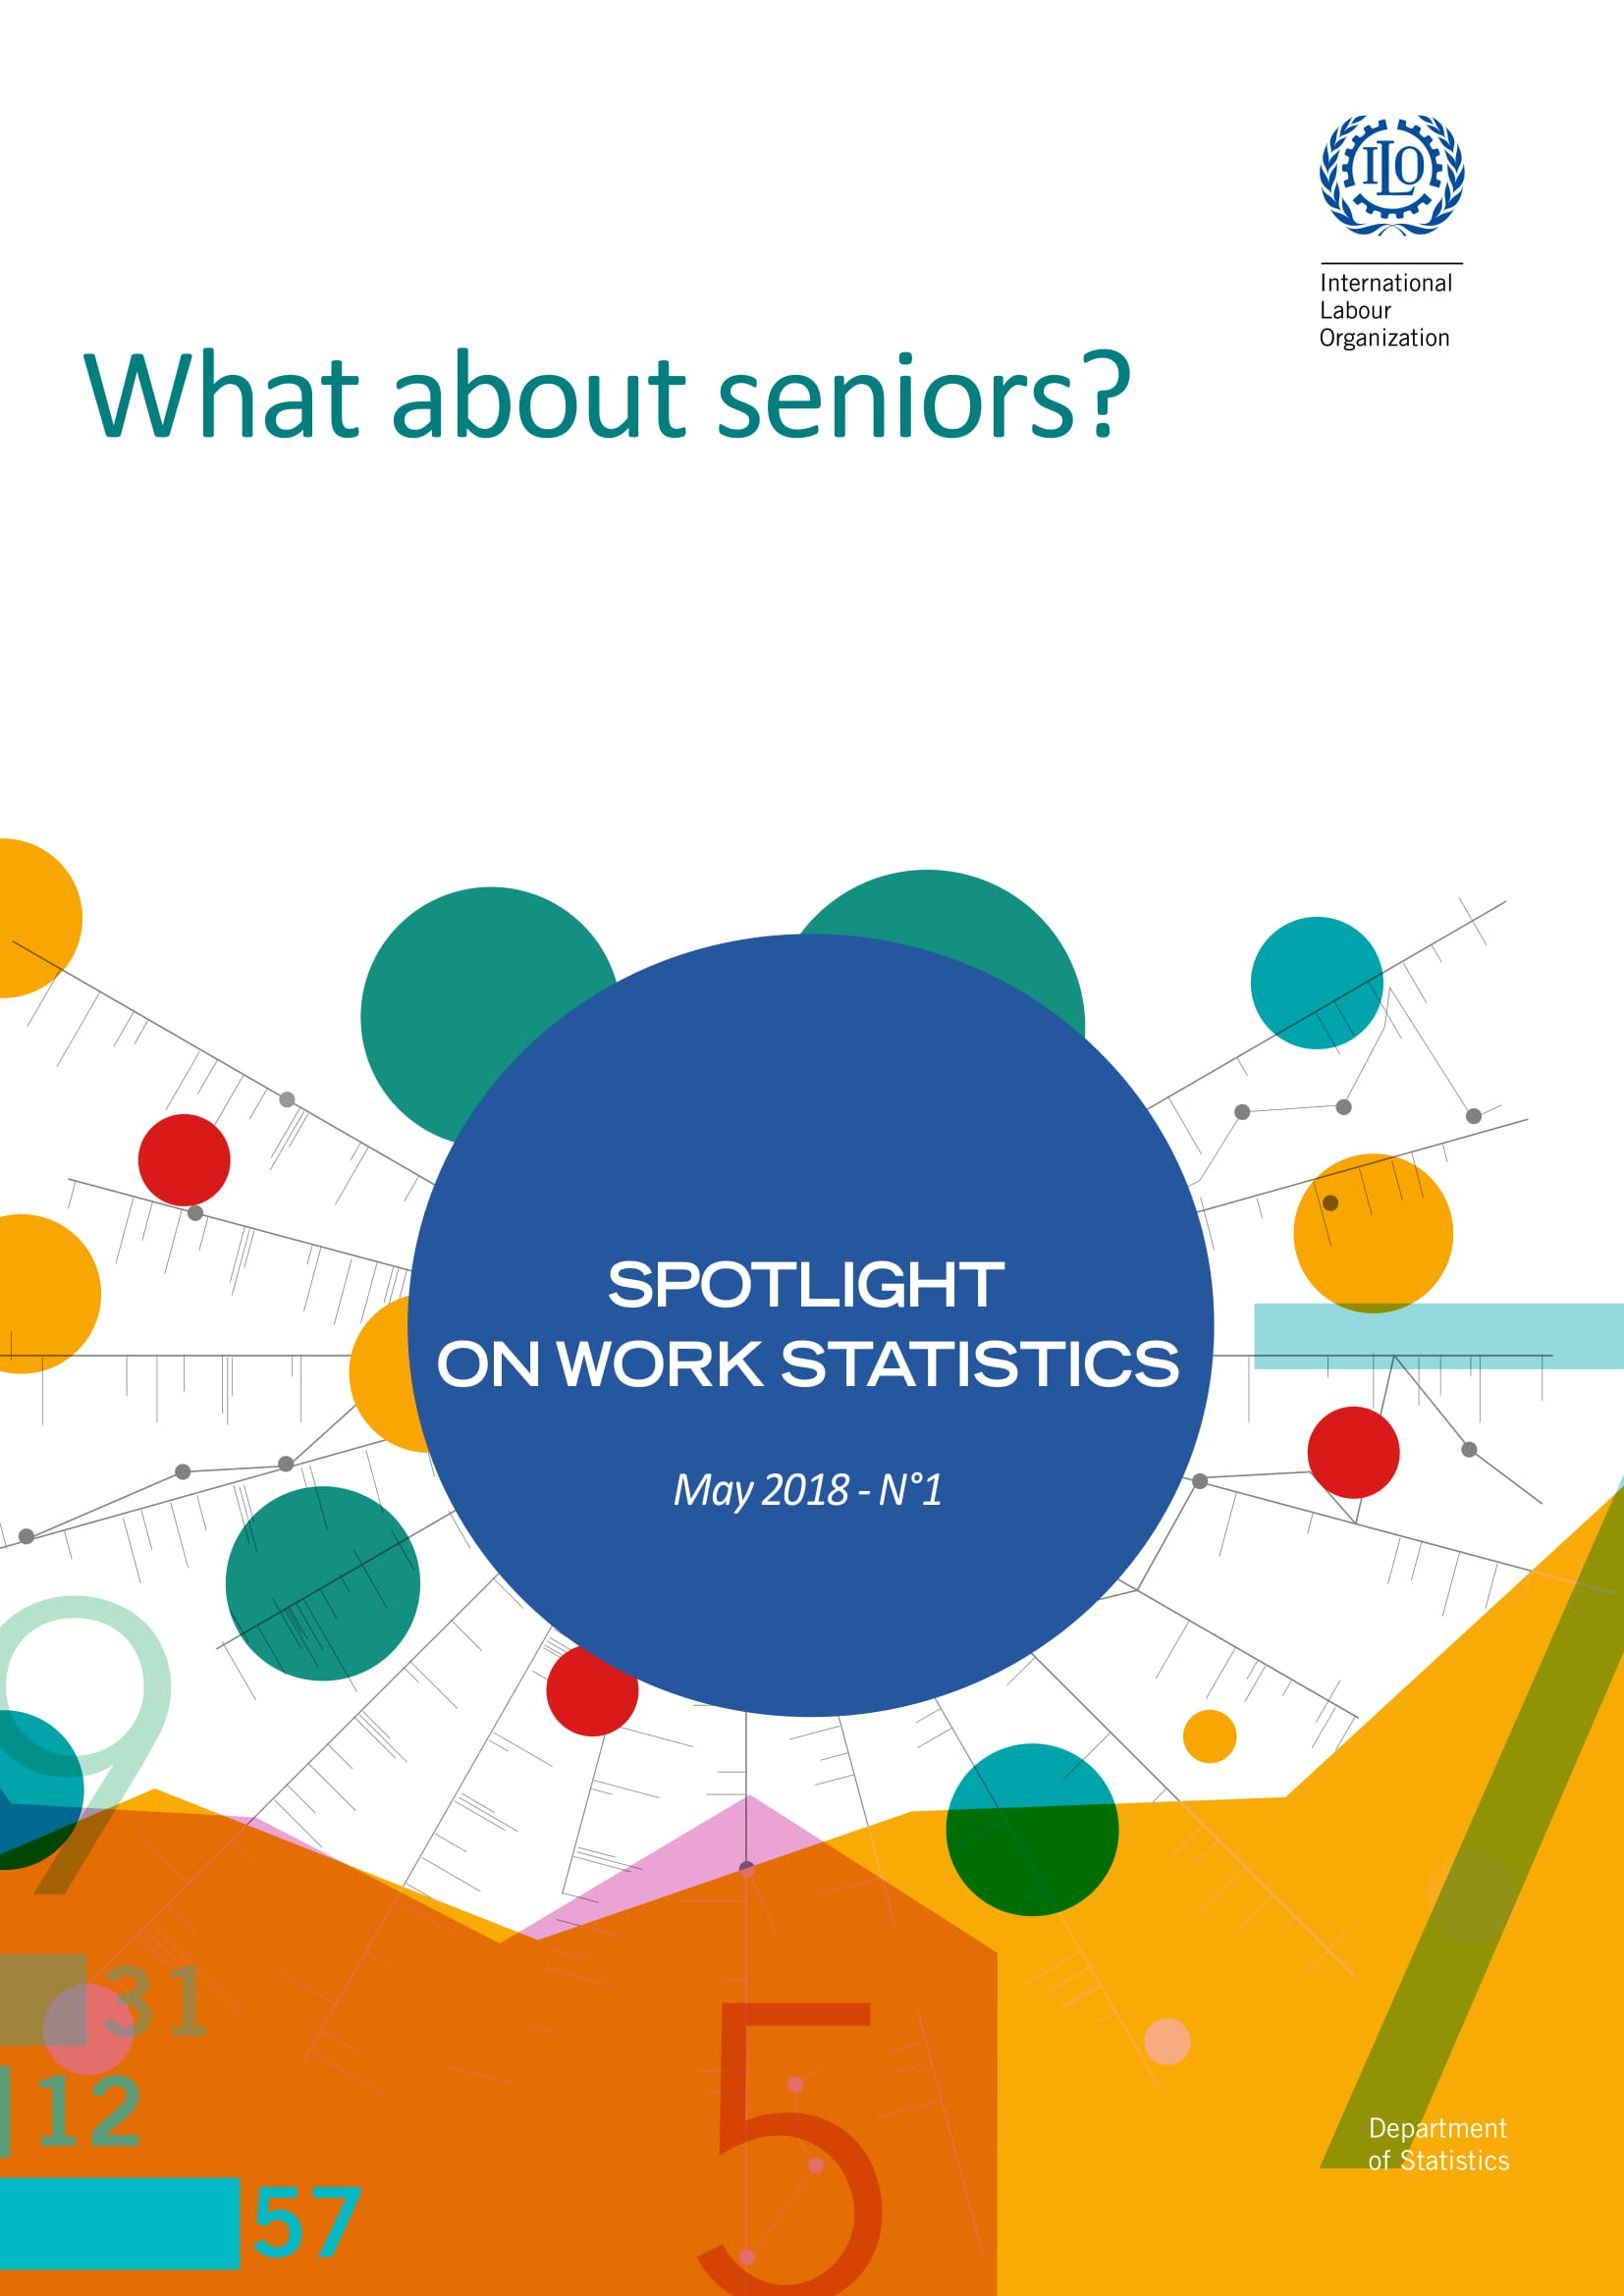 Spotlight on Work Statistics: What about seniors?